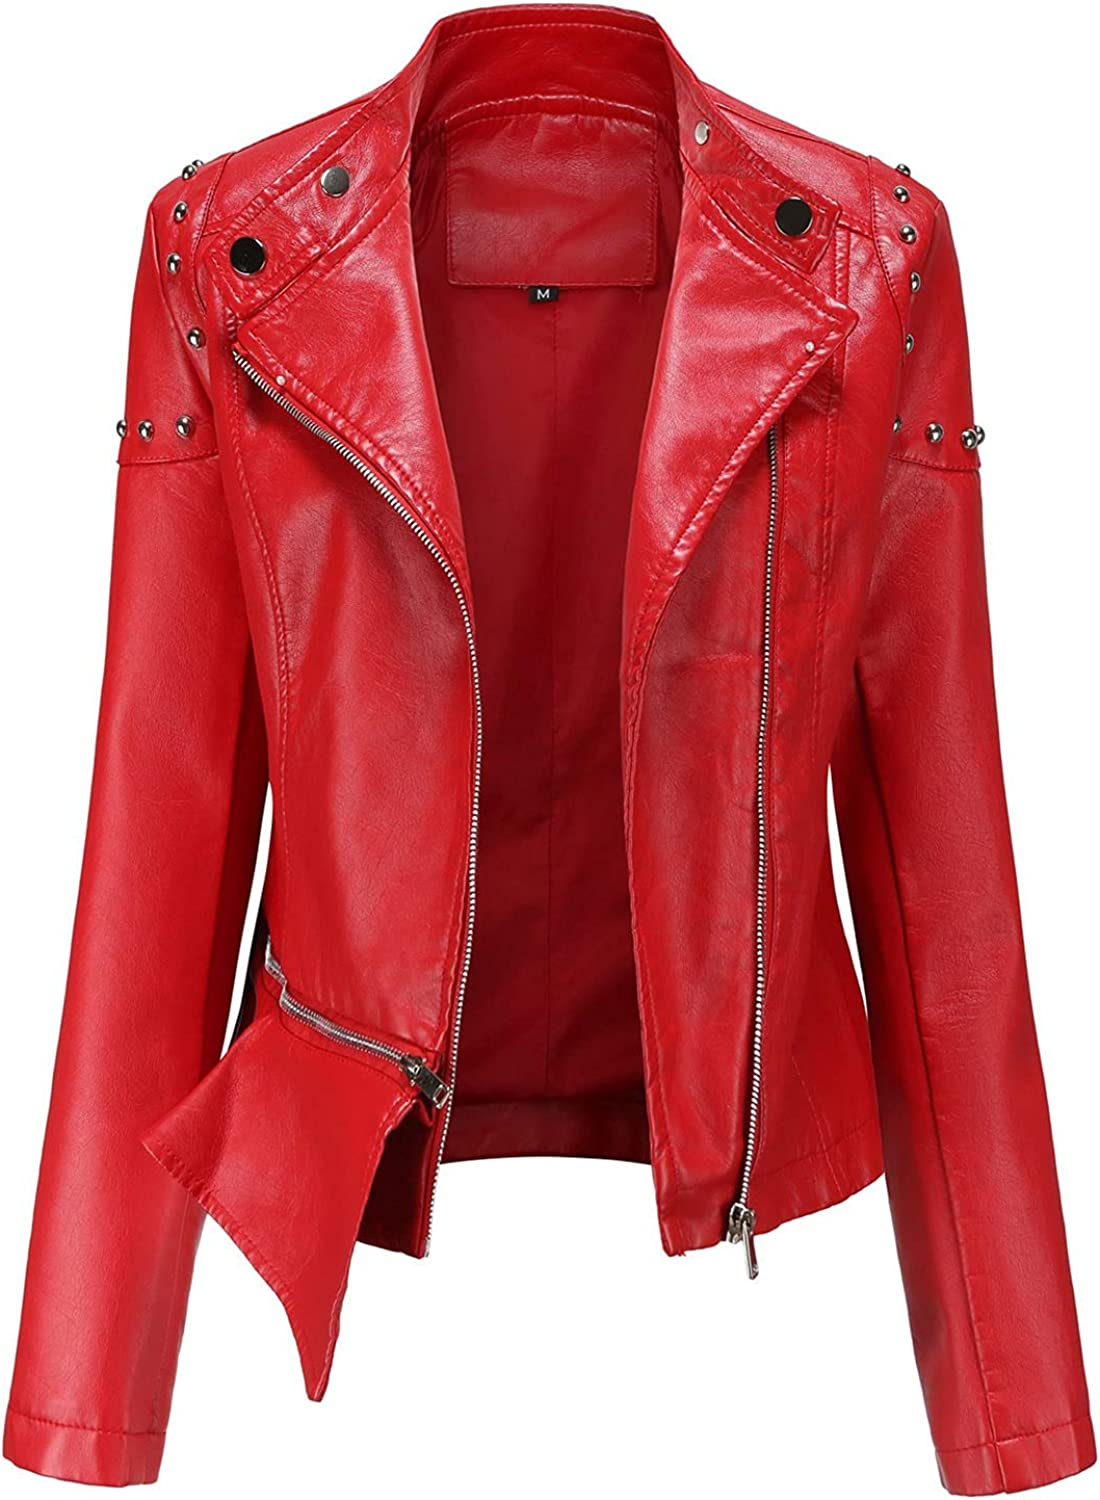 Women's Zip Up Faux Leather Black Jacket With Pockets,Fashion Fall Winter Plus size Short Lightweight Motorcycle Coat Tops